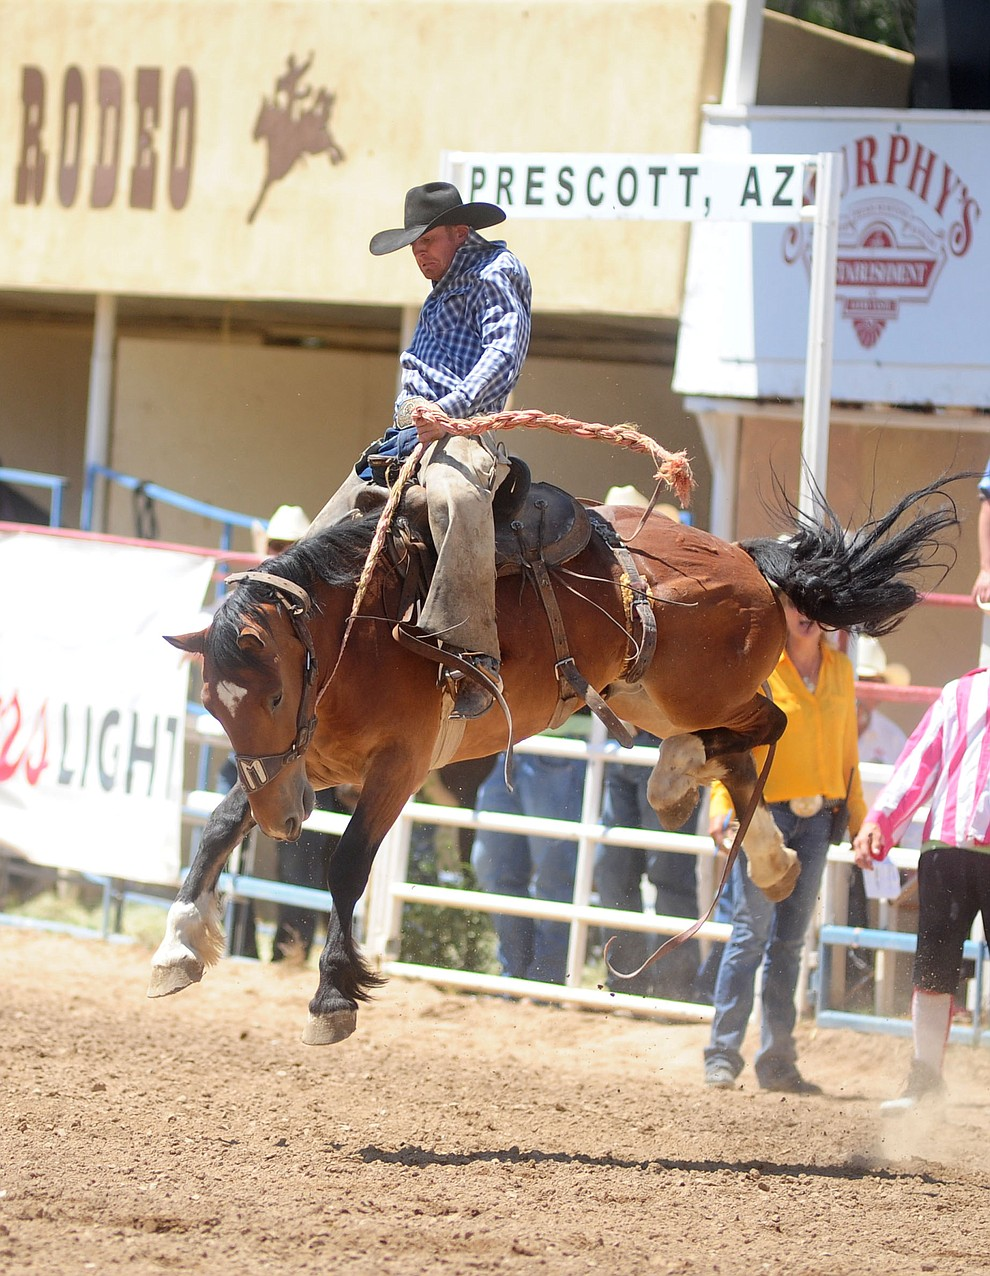 Zary May looks good early in the Cowpuncher's Ranch Bronc Riding during the 4th performance of the 2017 Prescott Frontier Days Rodeo at the Prescott Rodeo Grounds Saturday, July 1.  (Les Stukenberg/Courier)